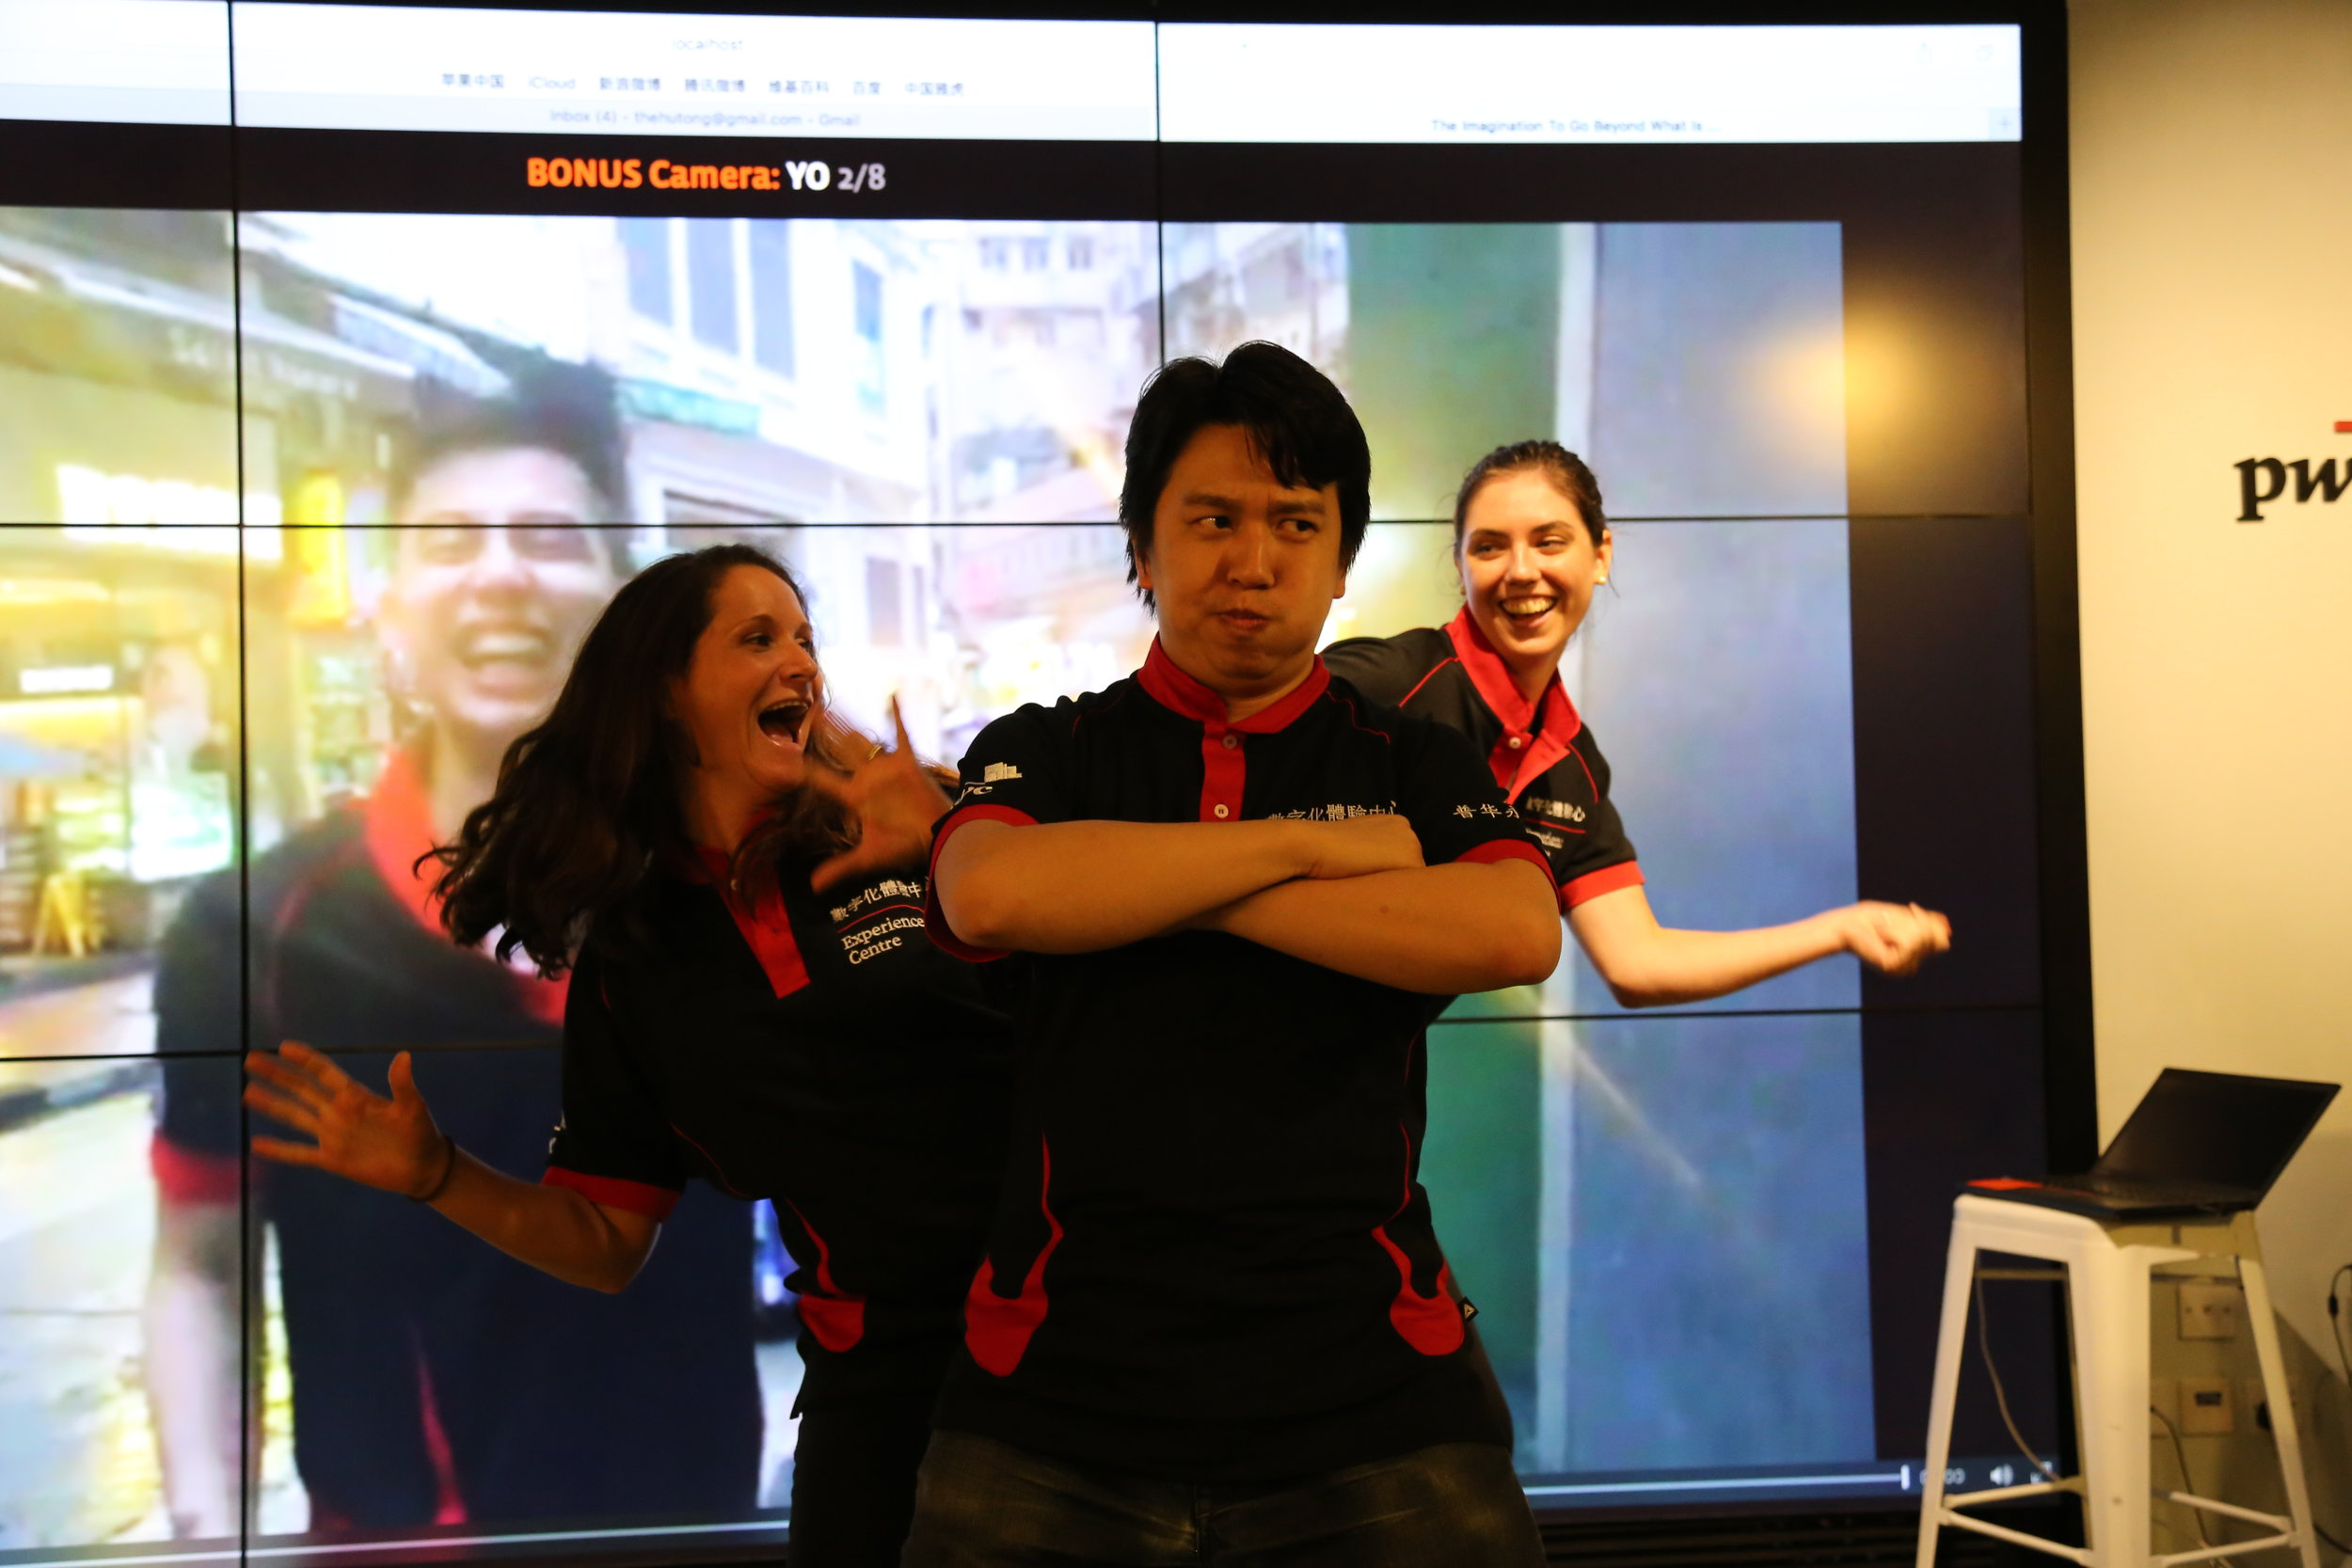 PwC Experience Centre Go Game -